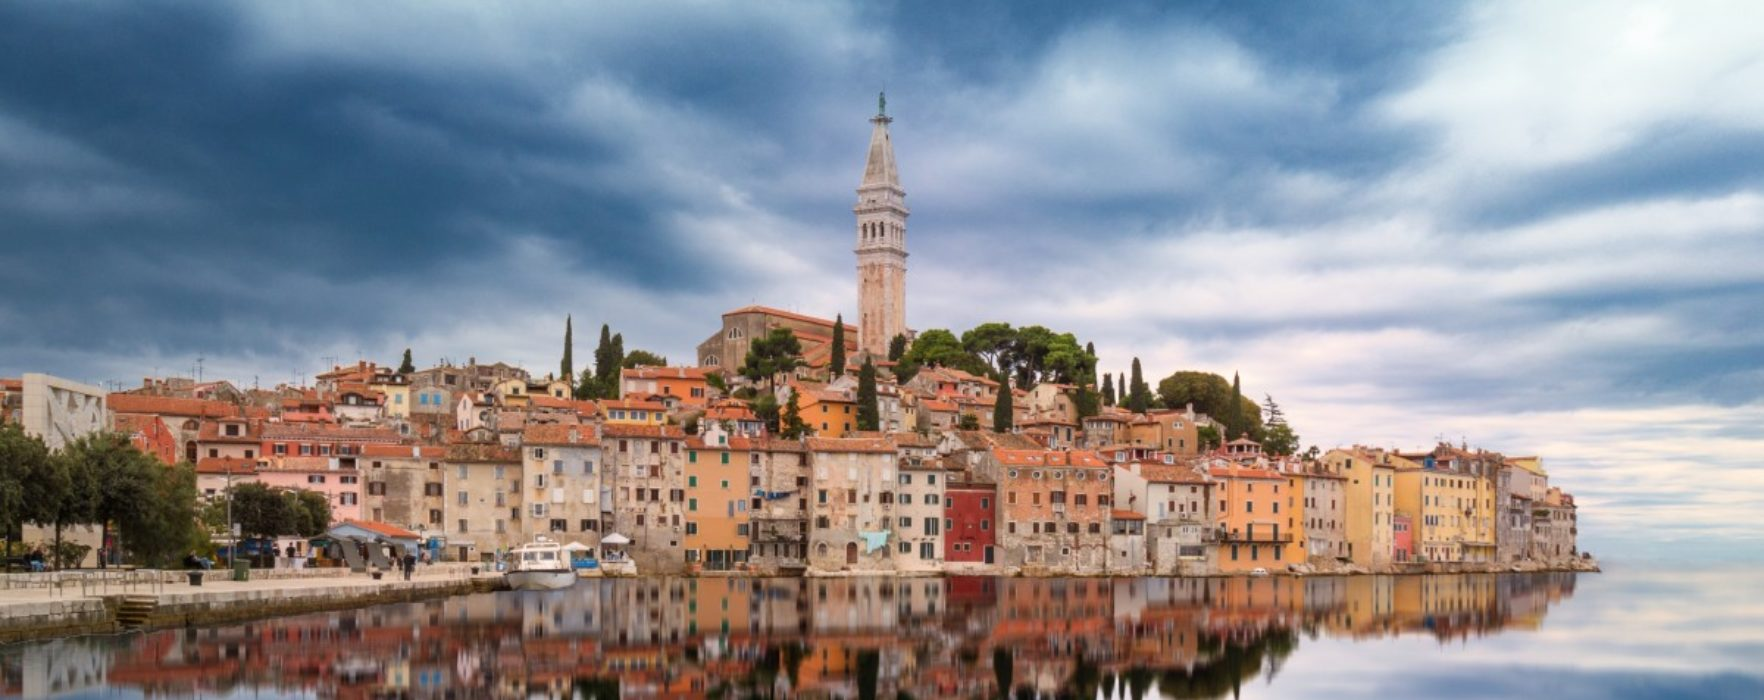 10 reasons to fall in love with Istria